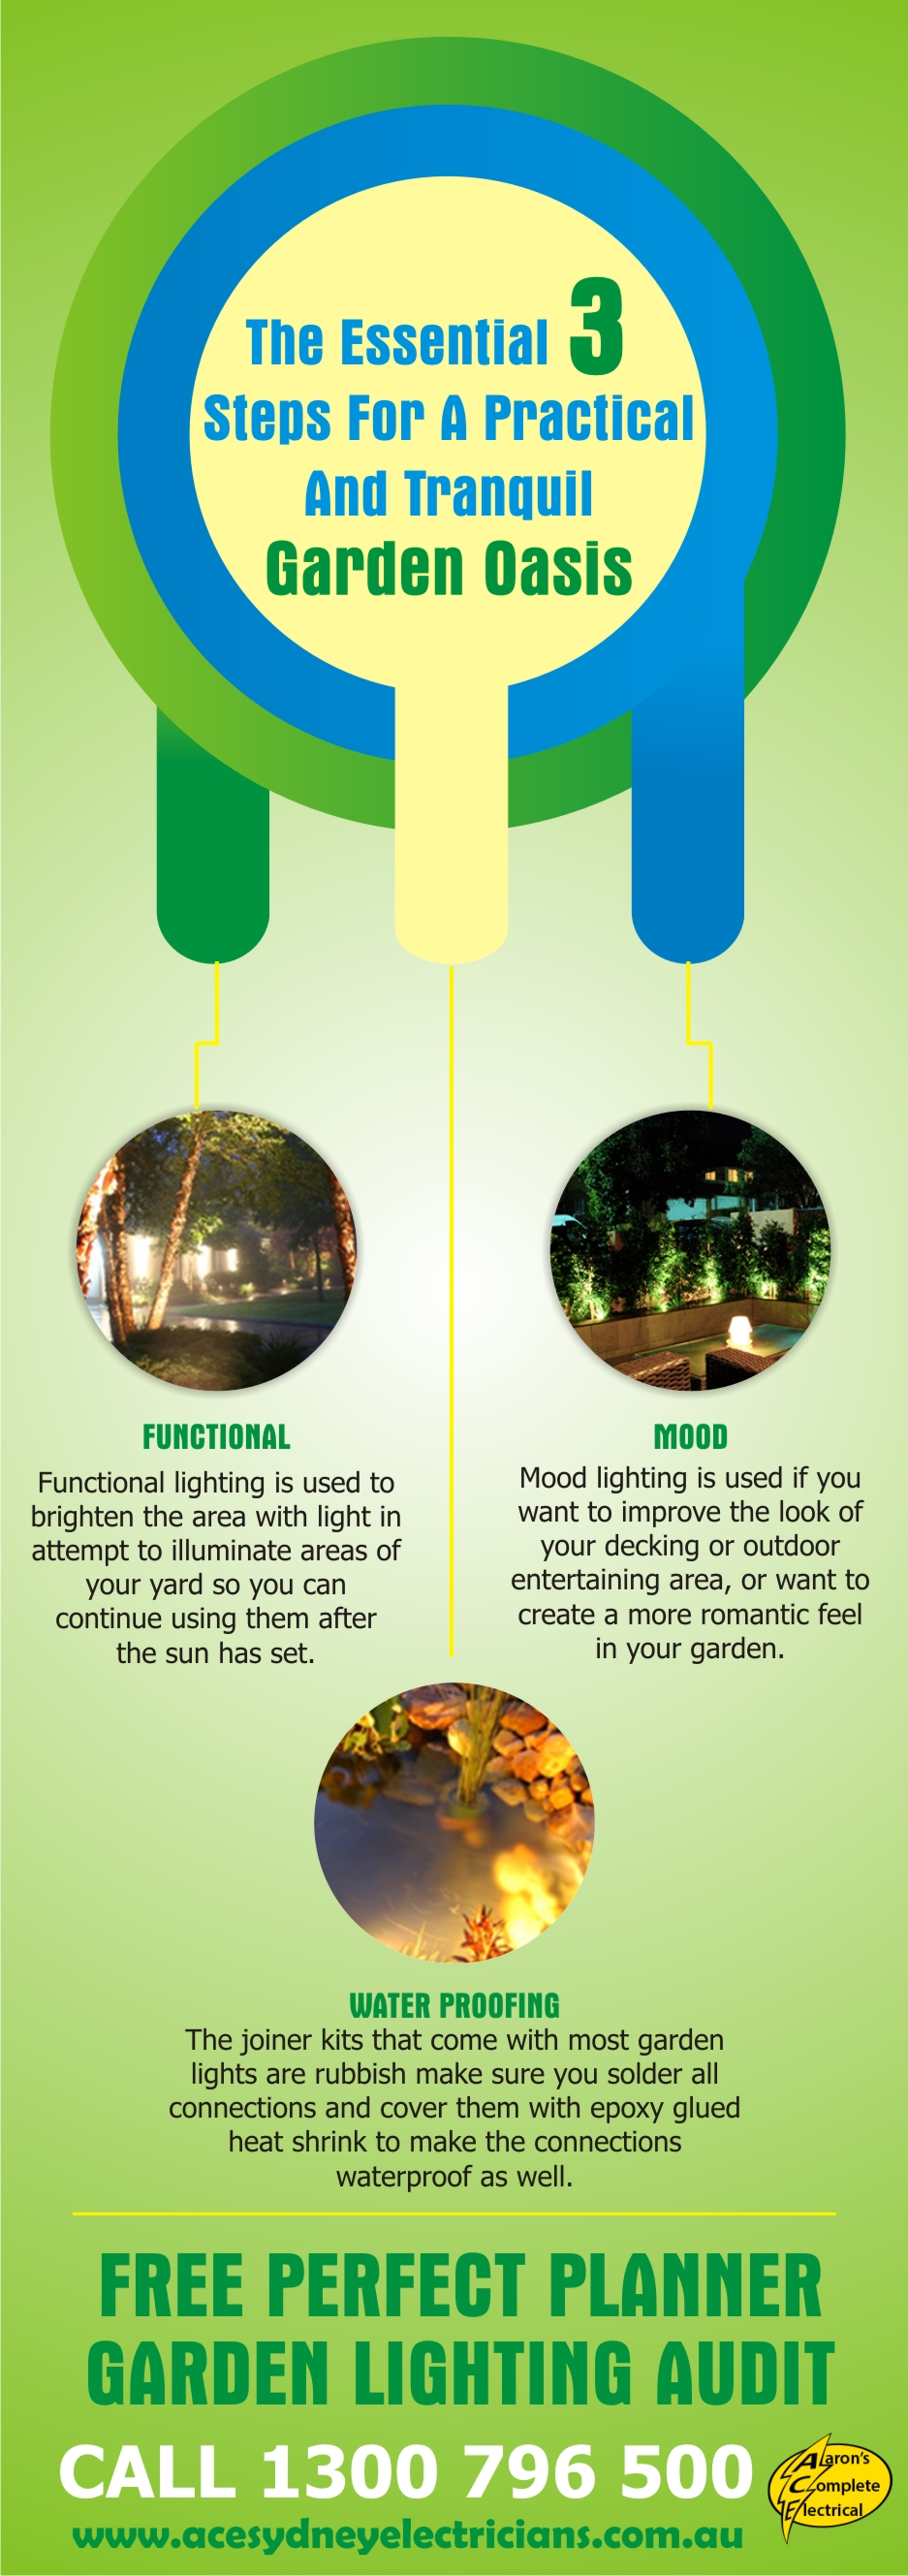 The Essential 3 Steps For A Practical And Tranquil Garden Oasis